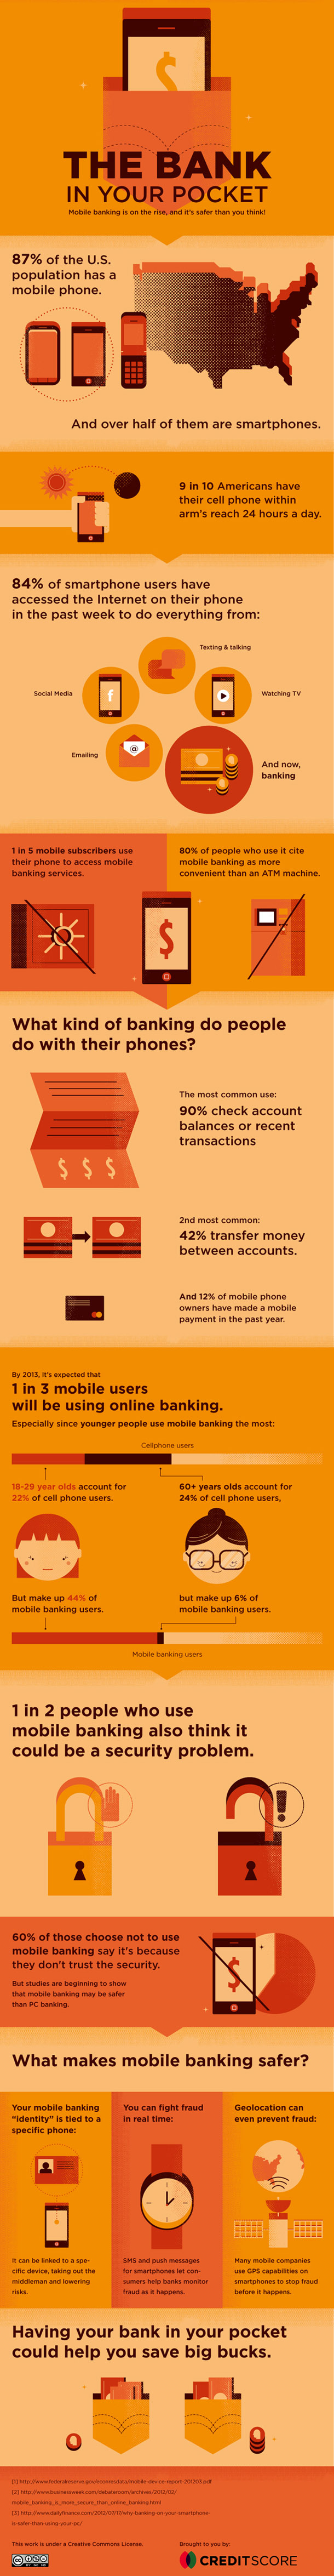 1. Mobile Utilization and banking